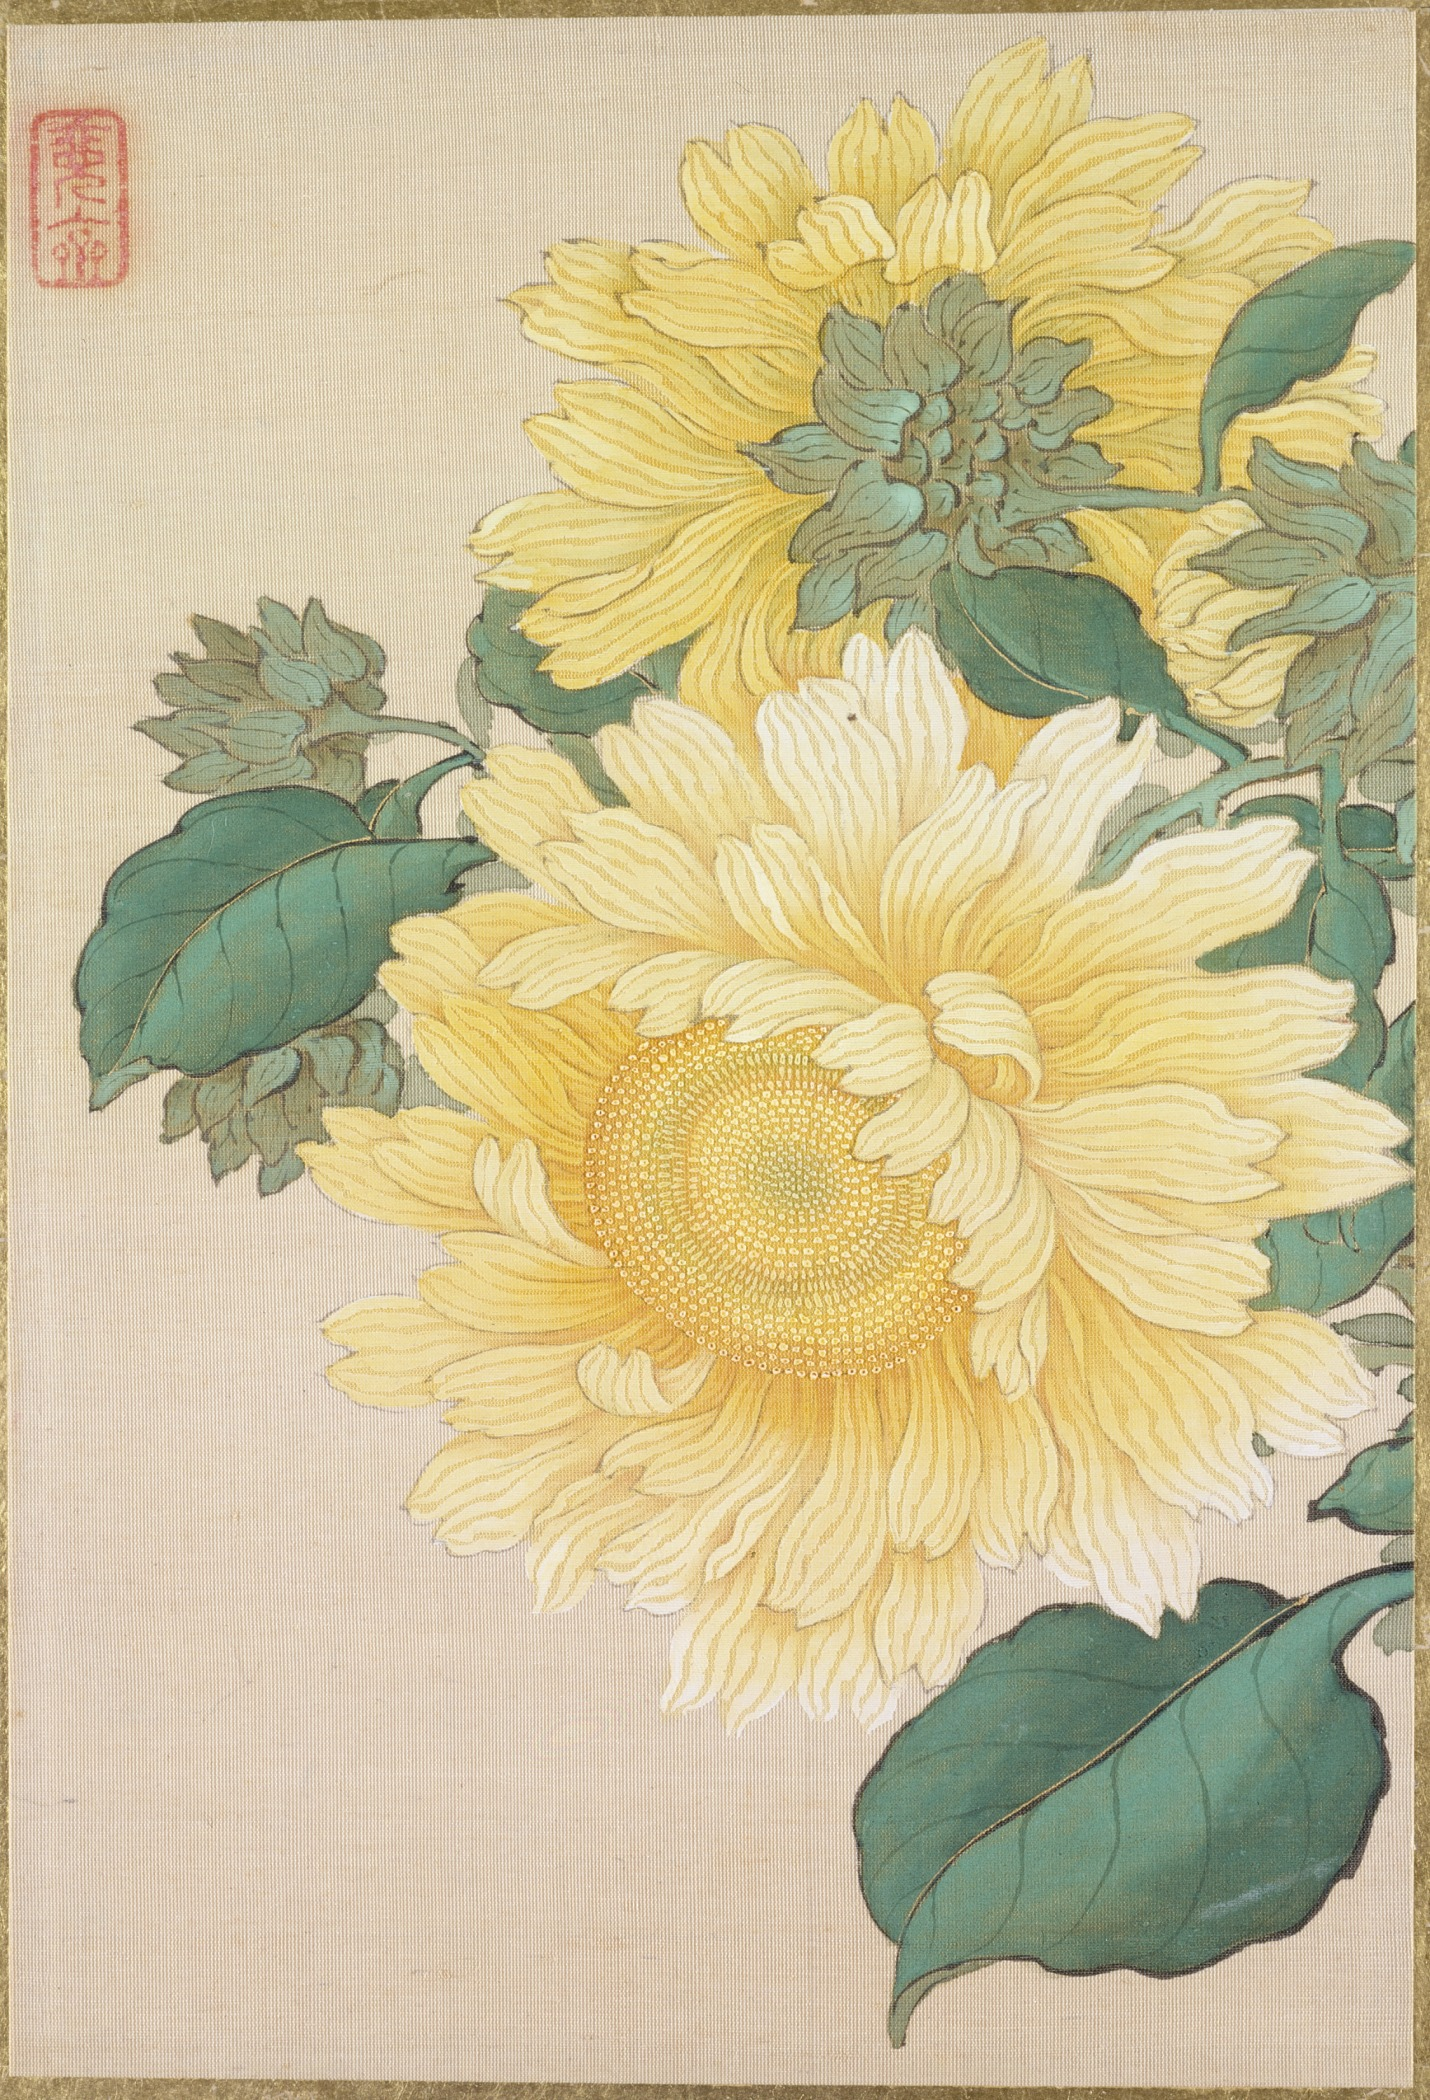 https://upload.wikimedia.org/wikipedia/commons/2/29/Pictures_of_Flowers_and_Birds_LACMA_M.85.99_%287_of_25%29.jpg